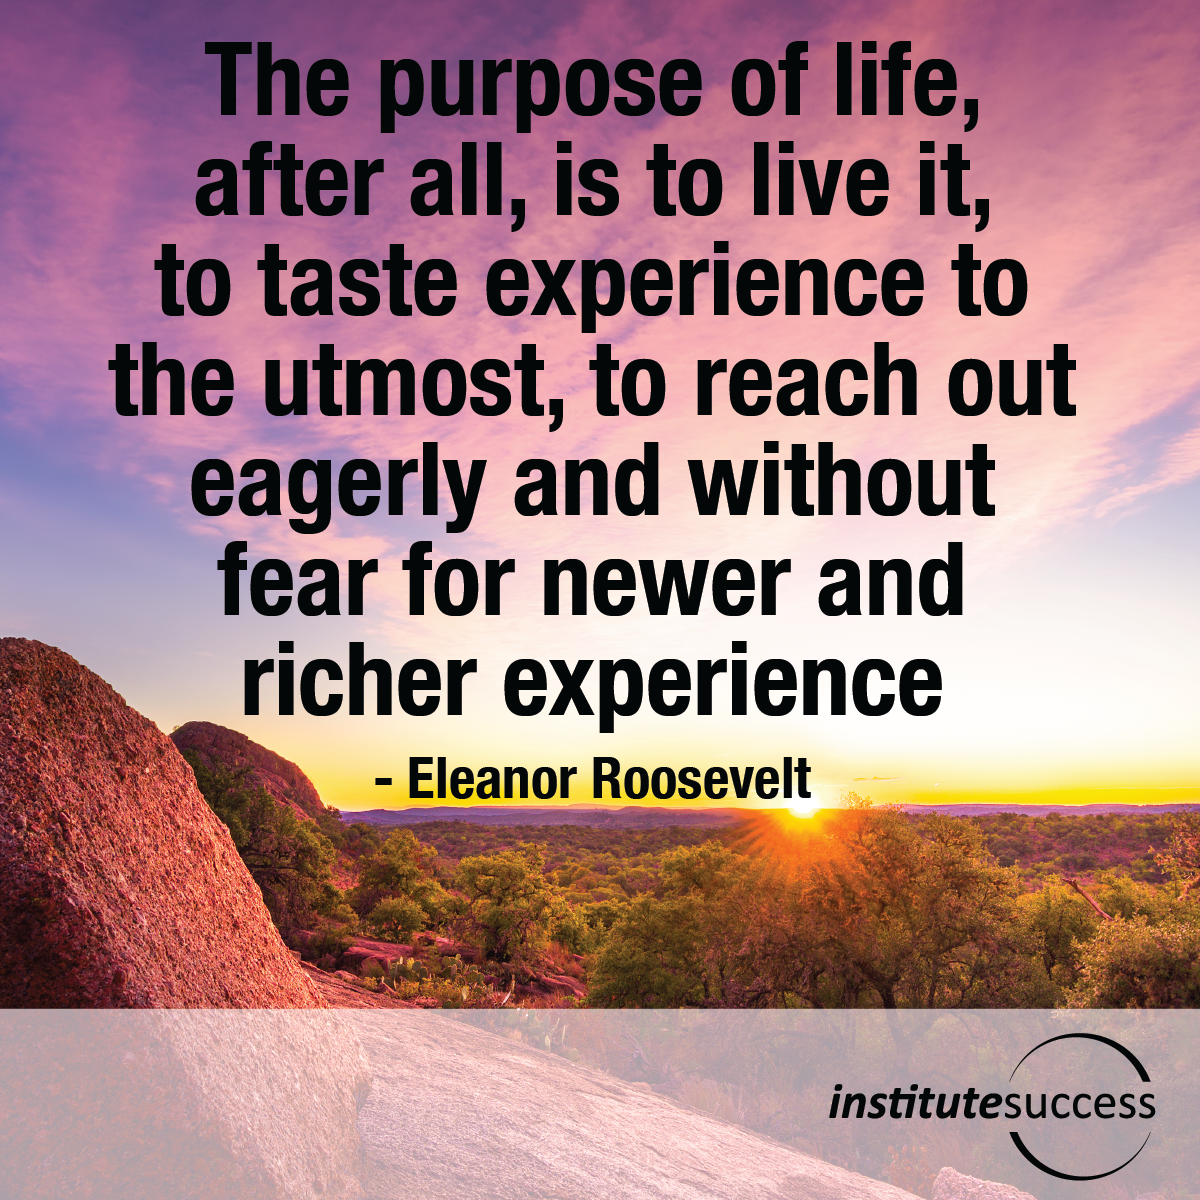 The purpose of life, after all, is to live it, to taste experience to the utmost, to reach out eagerly and without fear for newer and richer experience – Eleanor Roosevelt